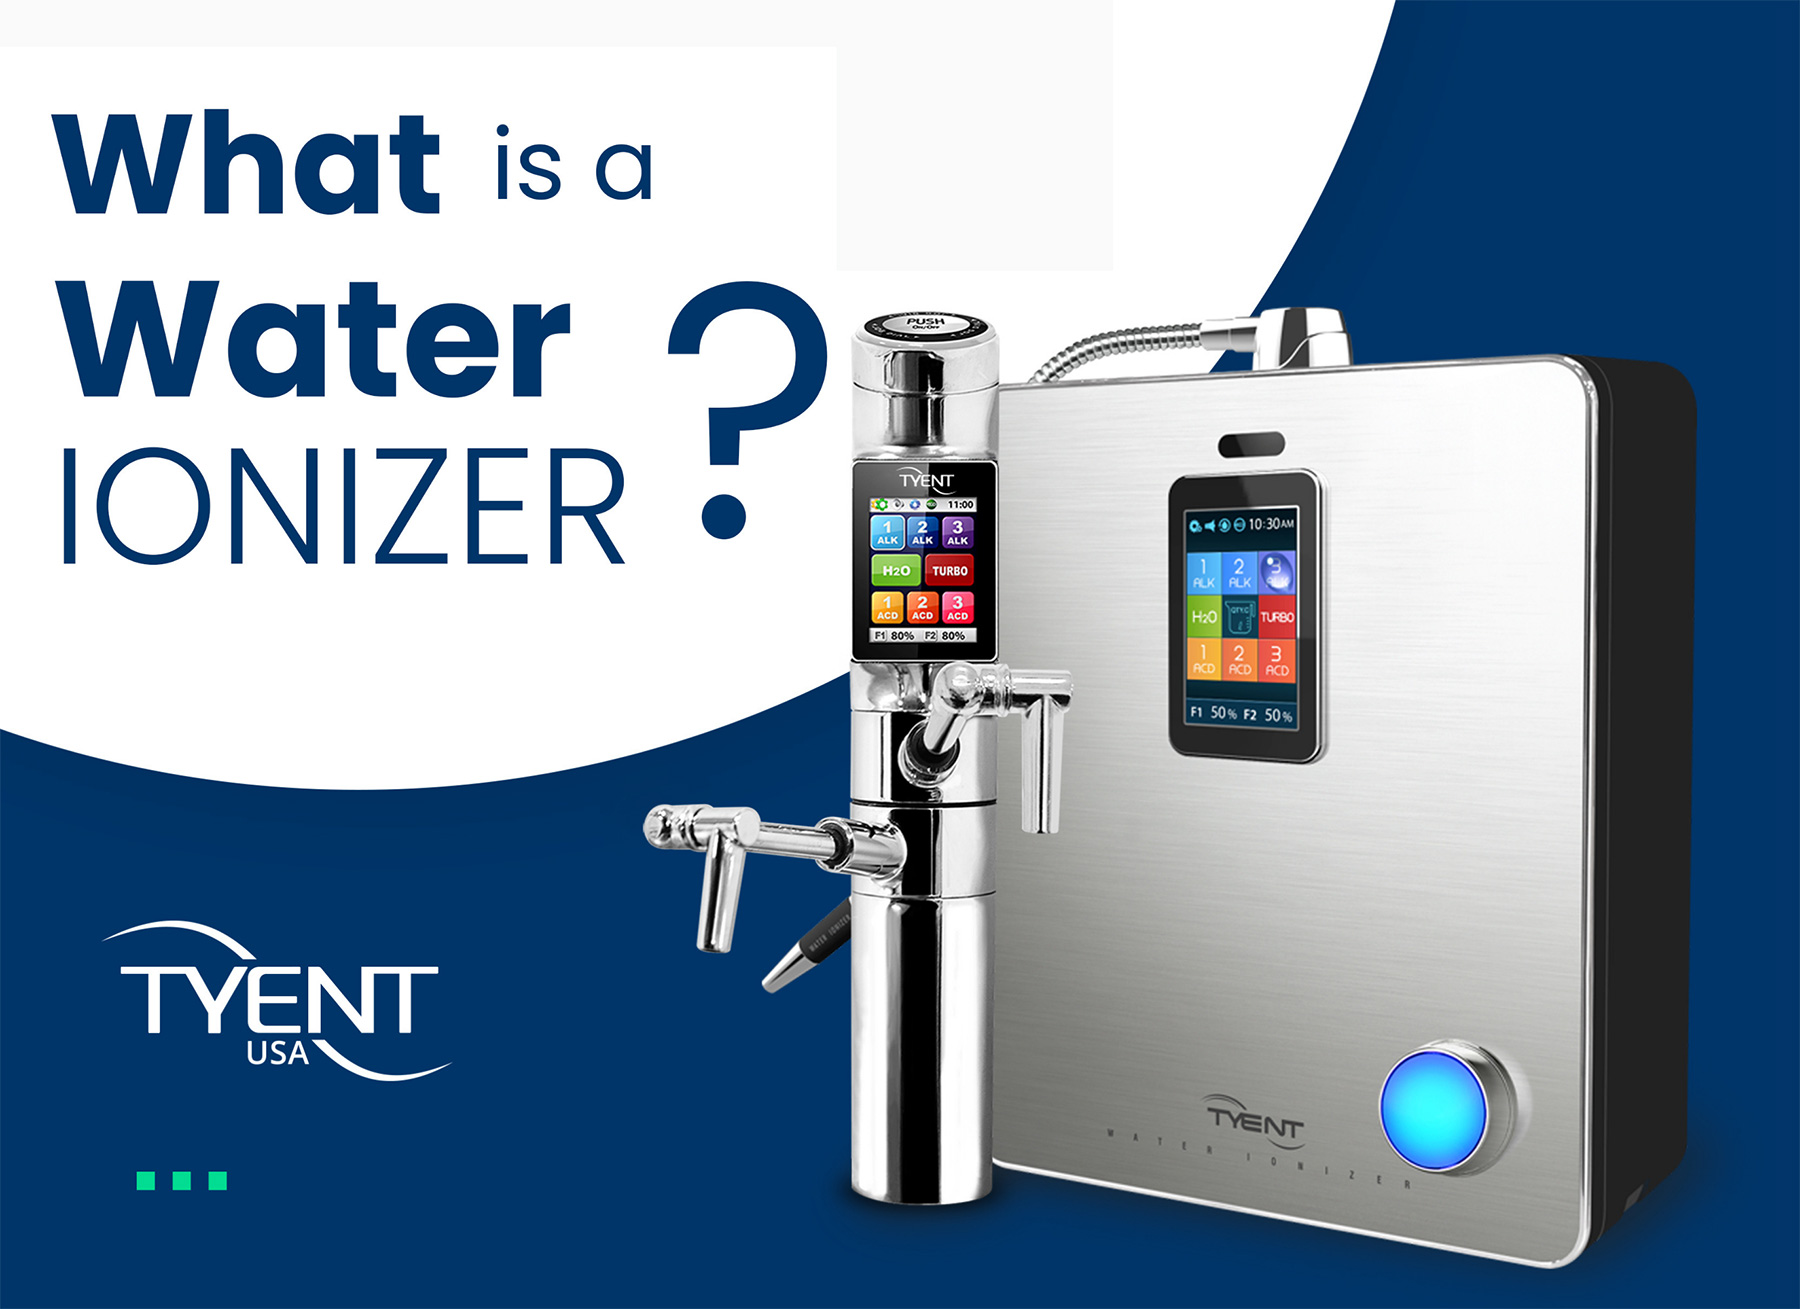 What is a water ionizer?